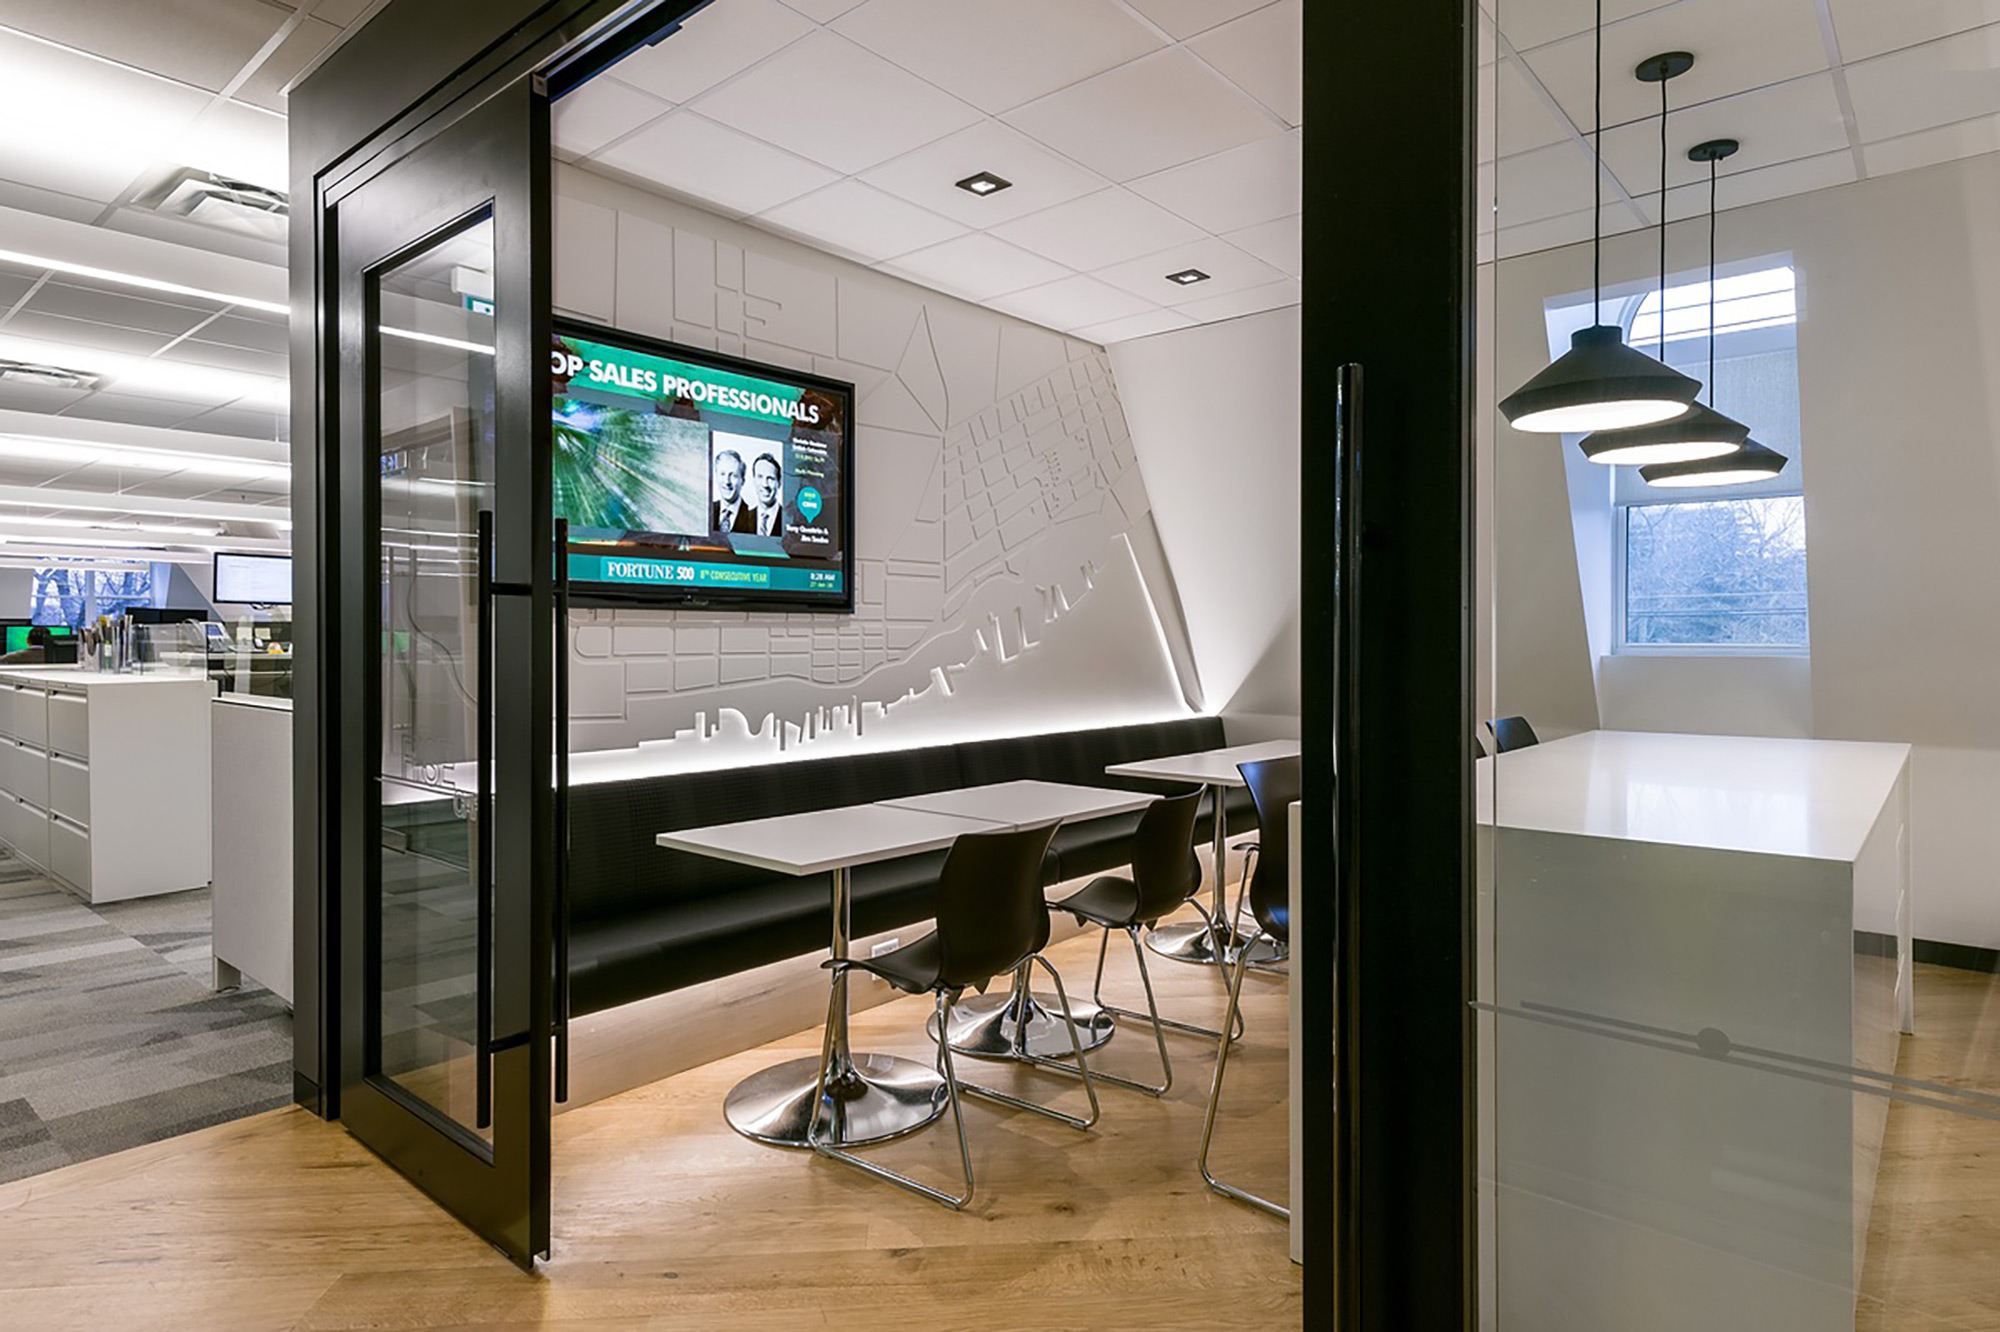 interior-design-real-estate-office-conference-room.jpg